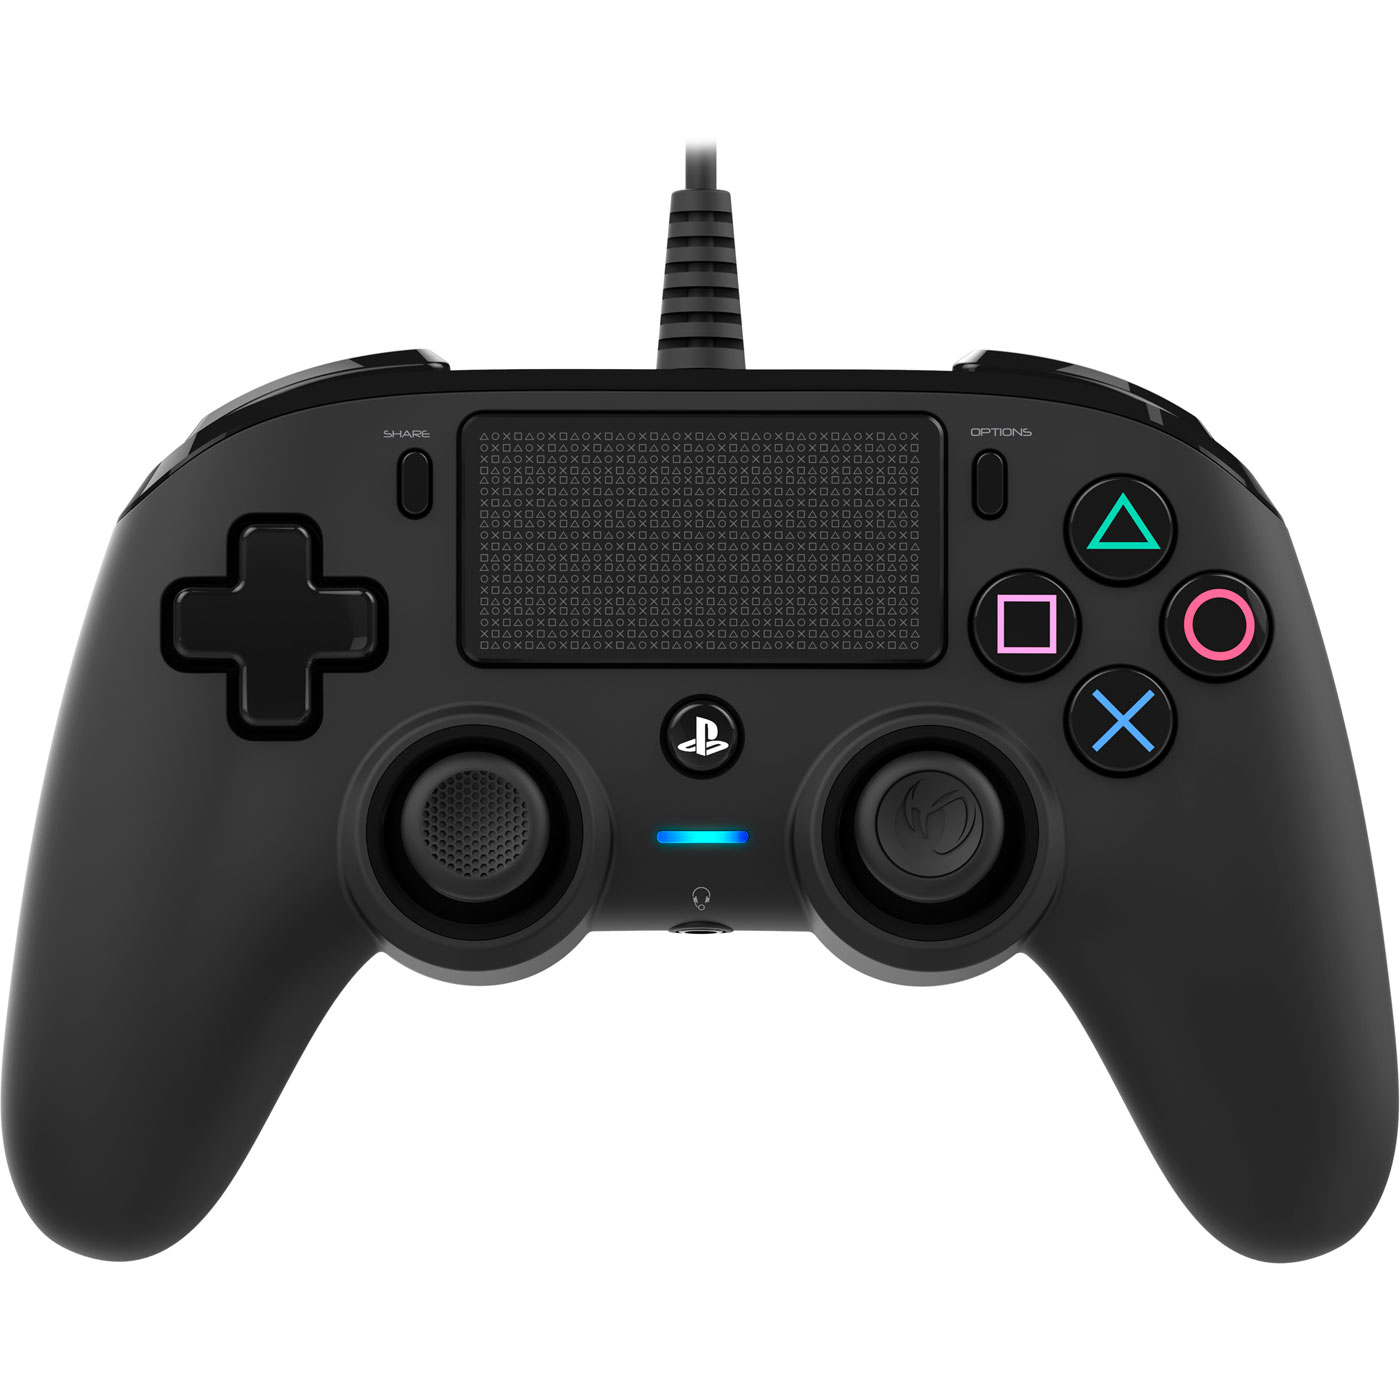 Accessoires PS4 Nacon Gaming Compact Controller Noir Manette gaming filaire  pour PlayStation 4